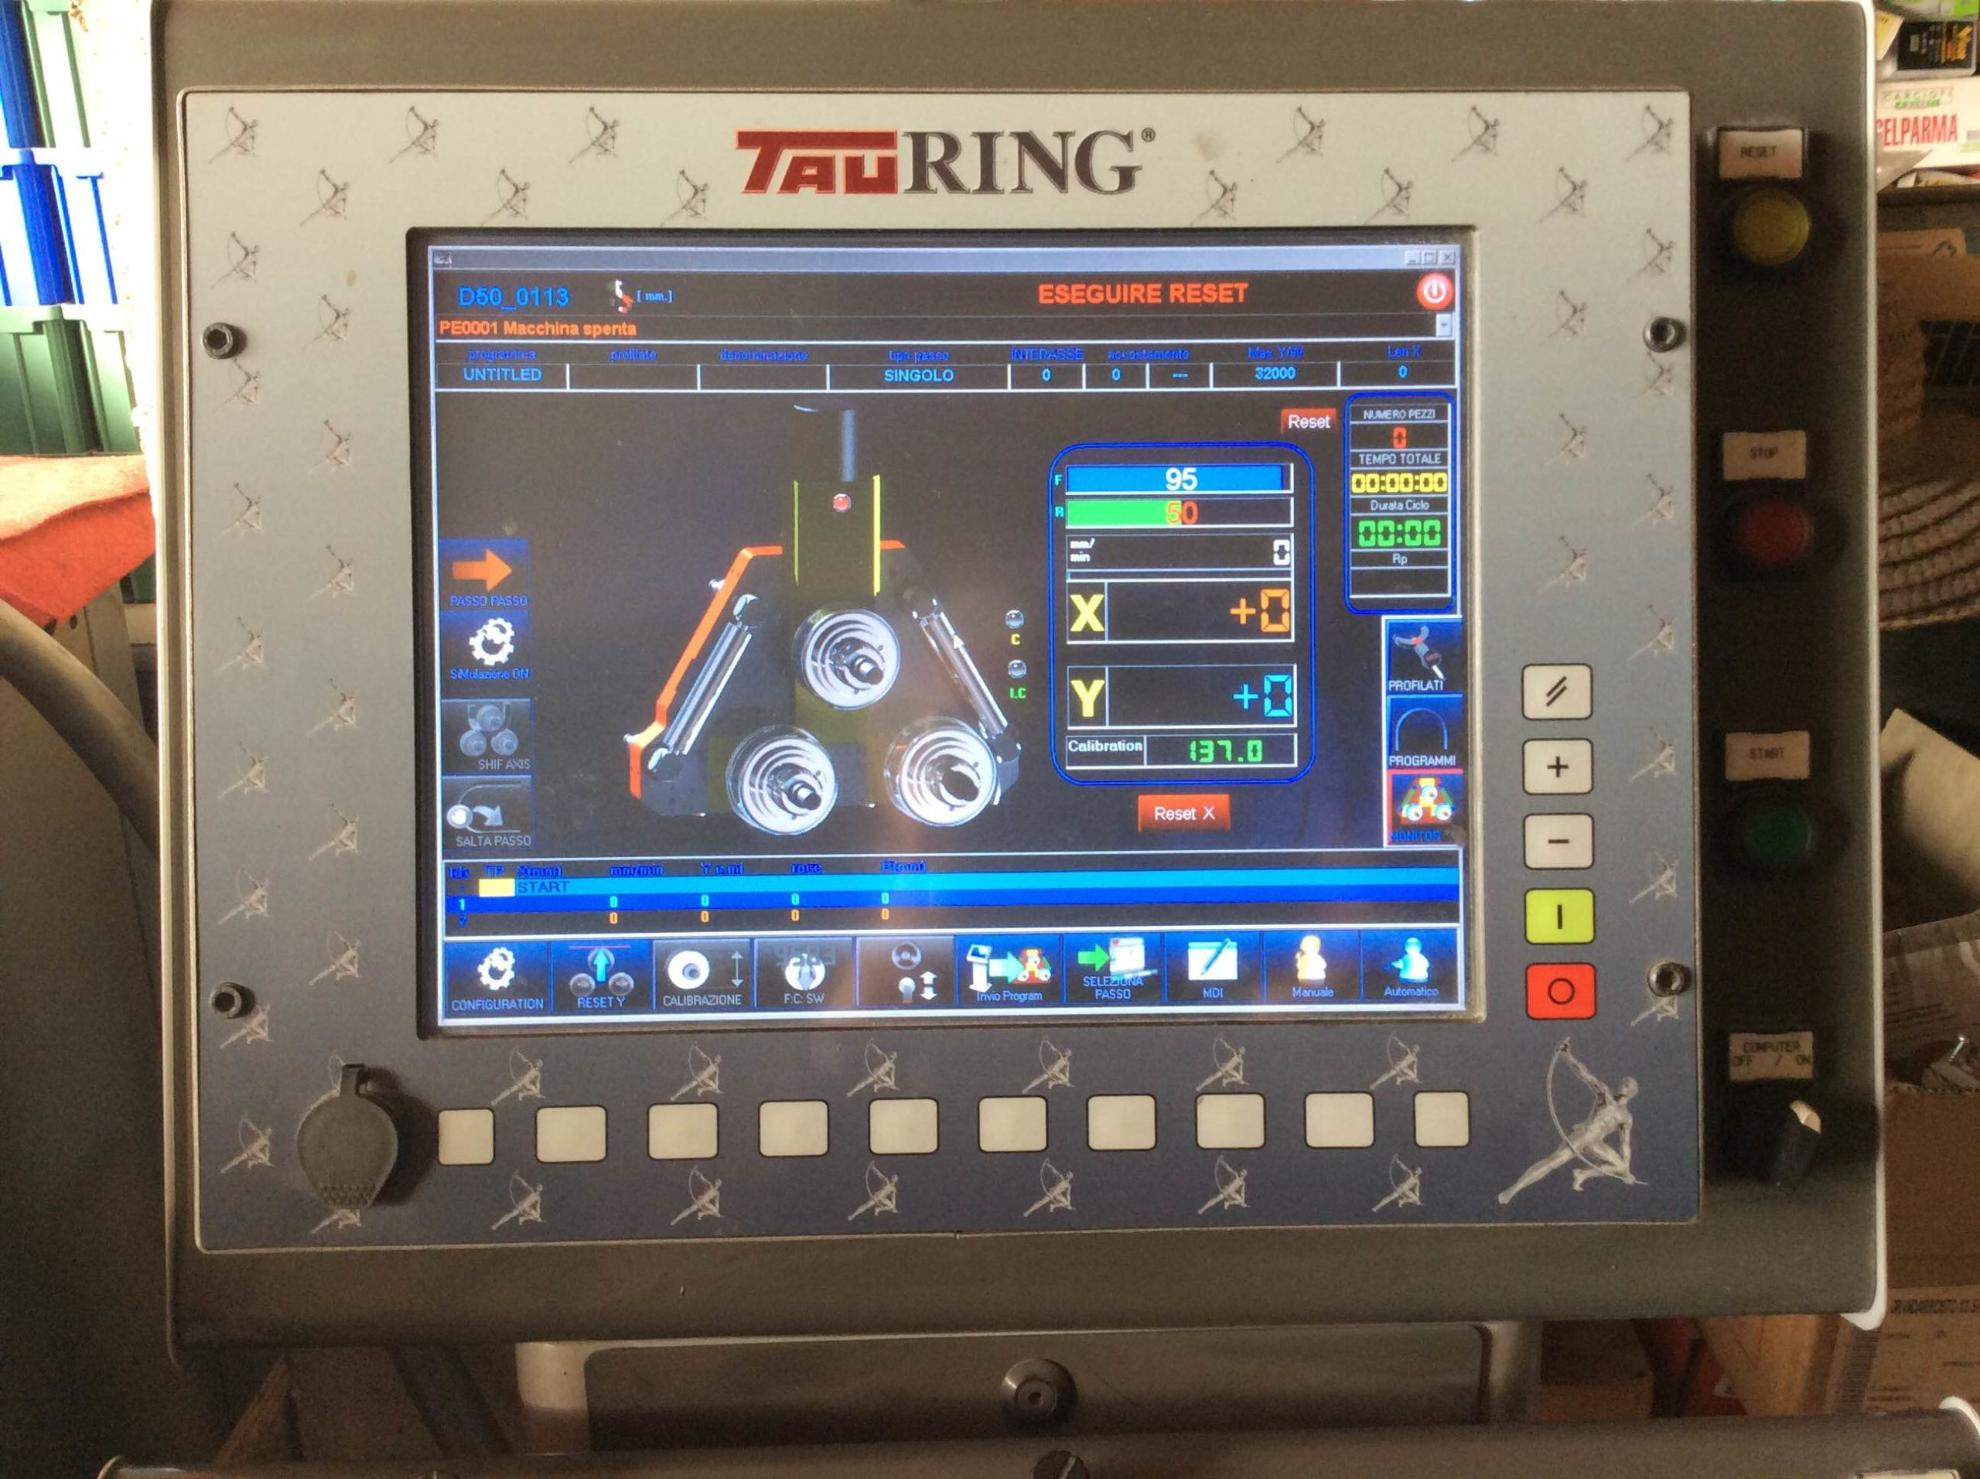 TAURING DELTA 50 CNC-I Image